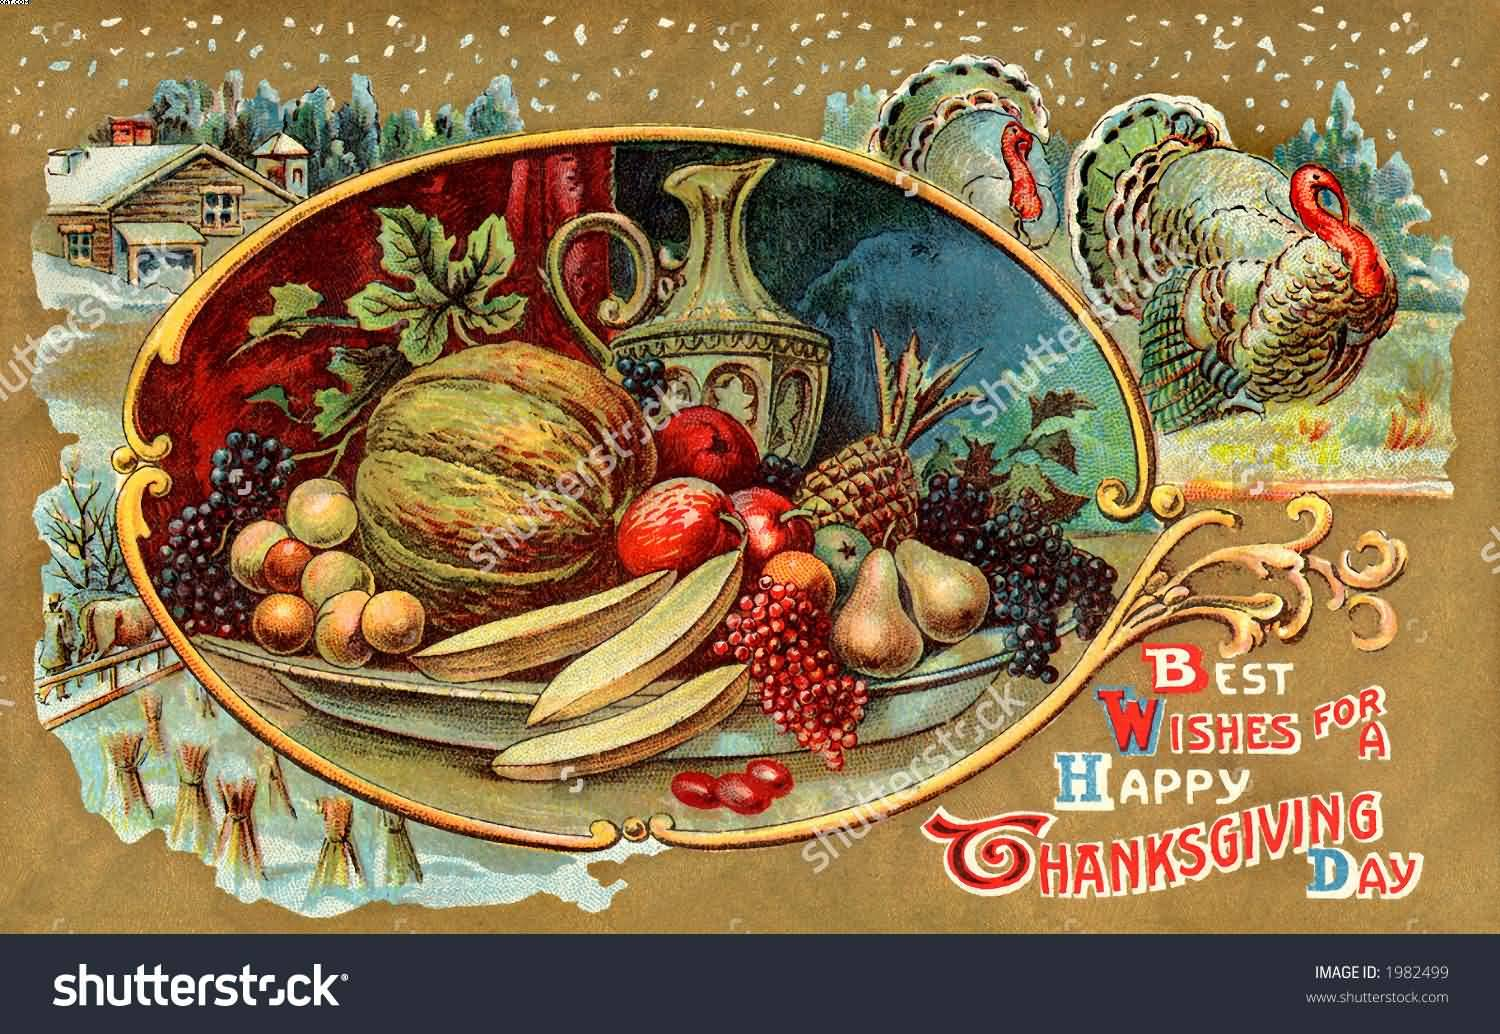 Best Wishes For A Happy Thanksgiving Day Ornate